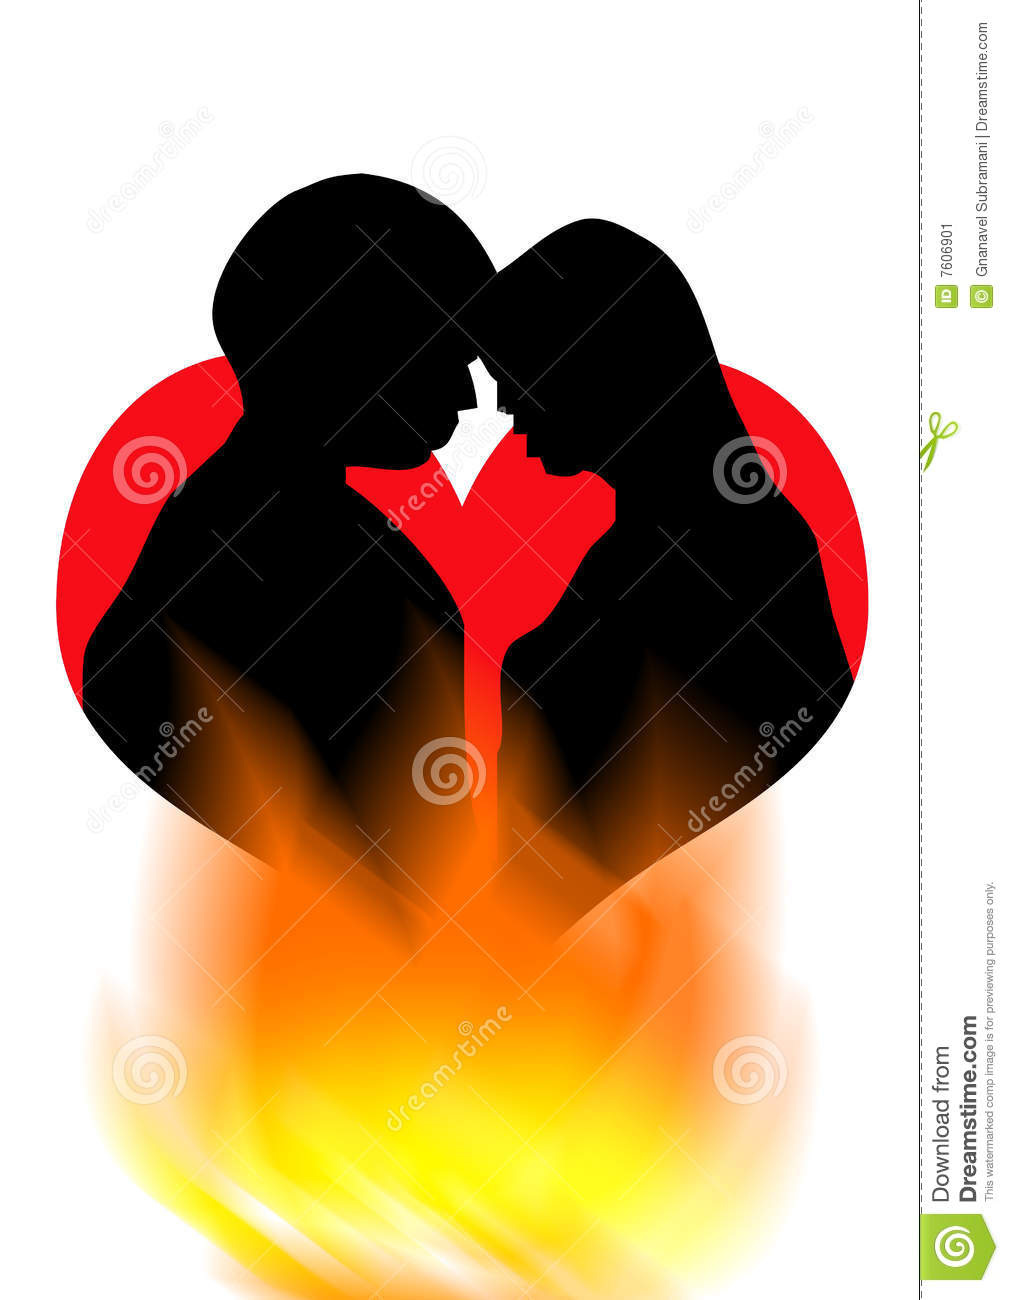 Download this Romance Kiss Romantic Love Symbol With Fire Background picture